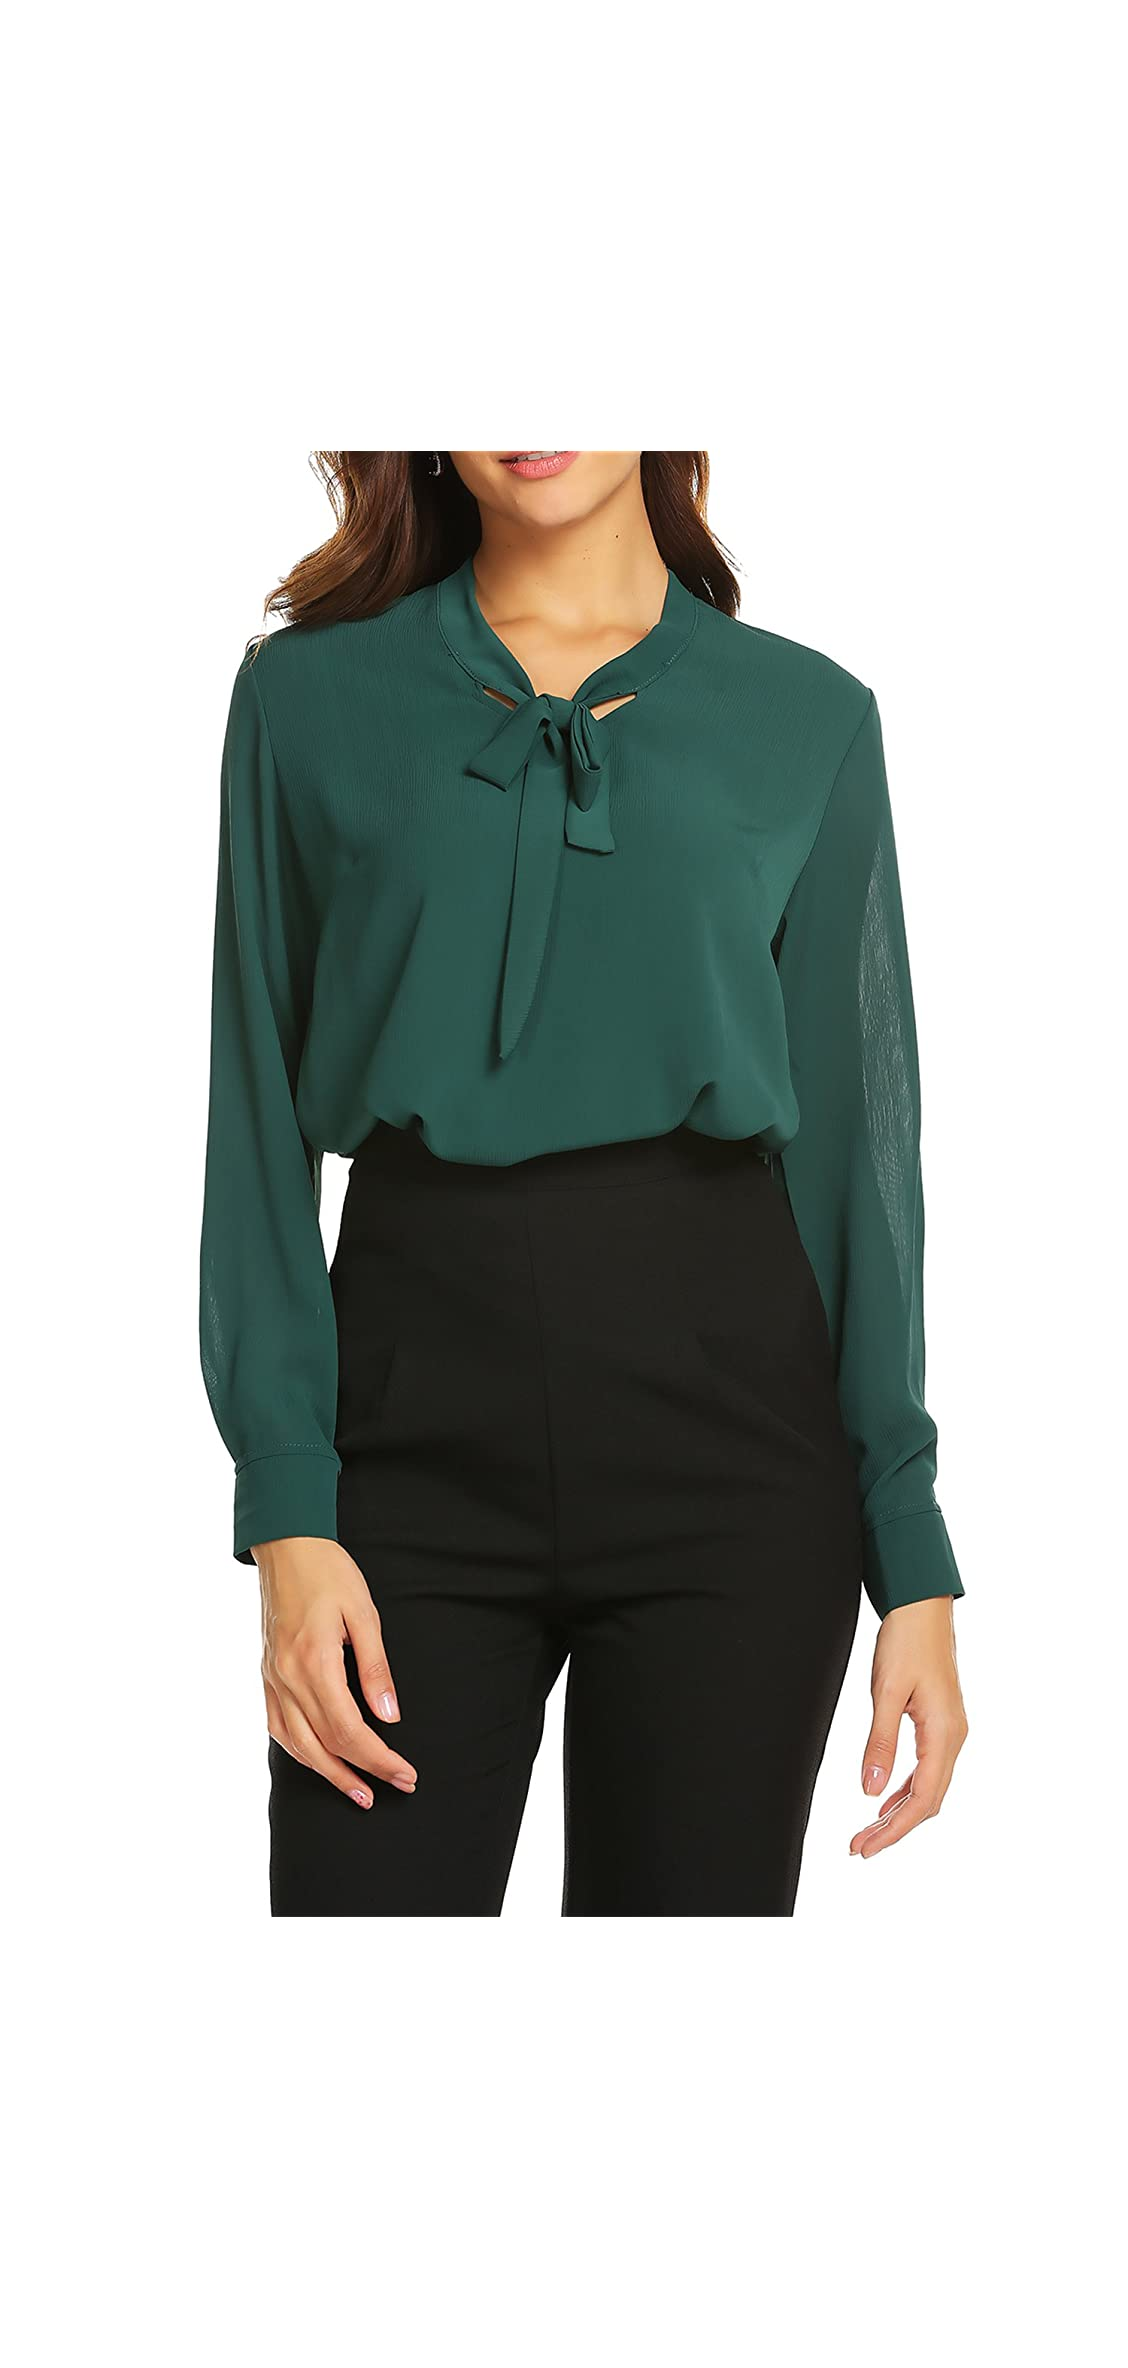 Womens Bow Tie Neck Long/short Sleeve Casual Office Work